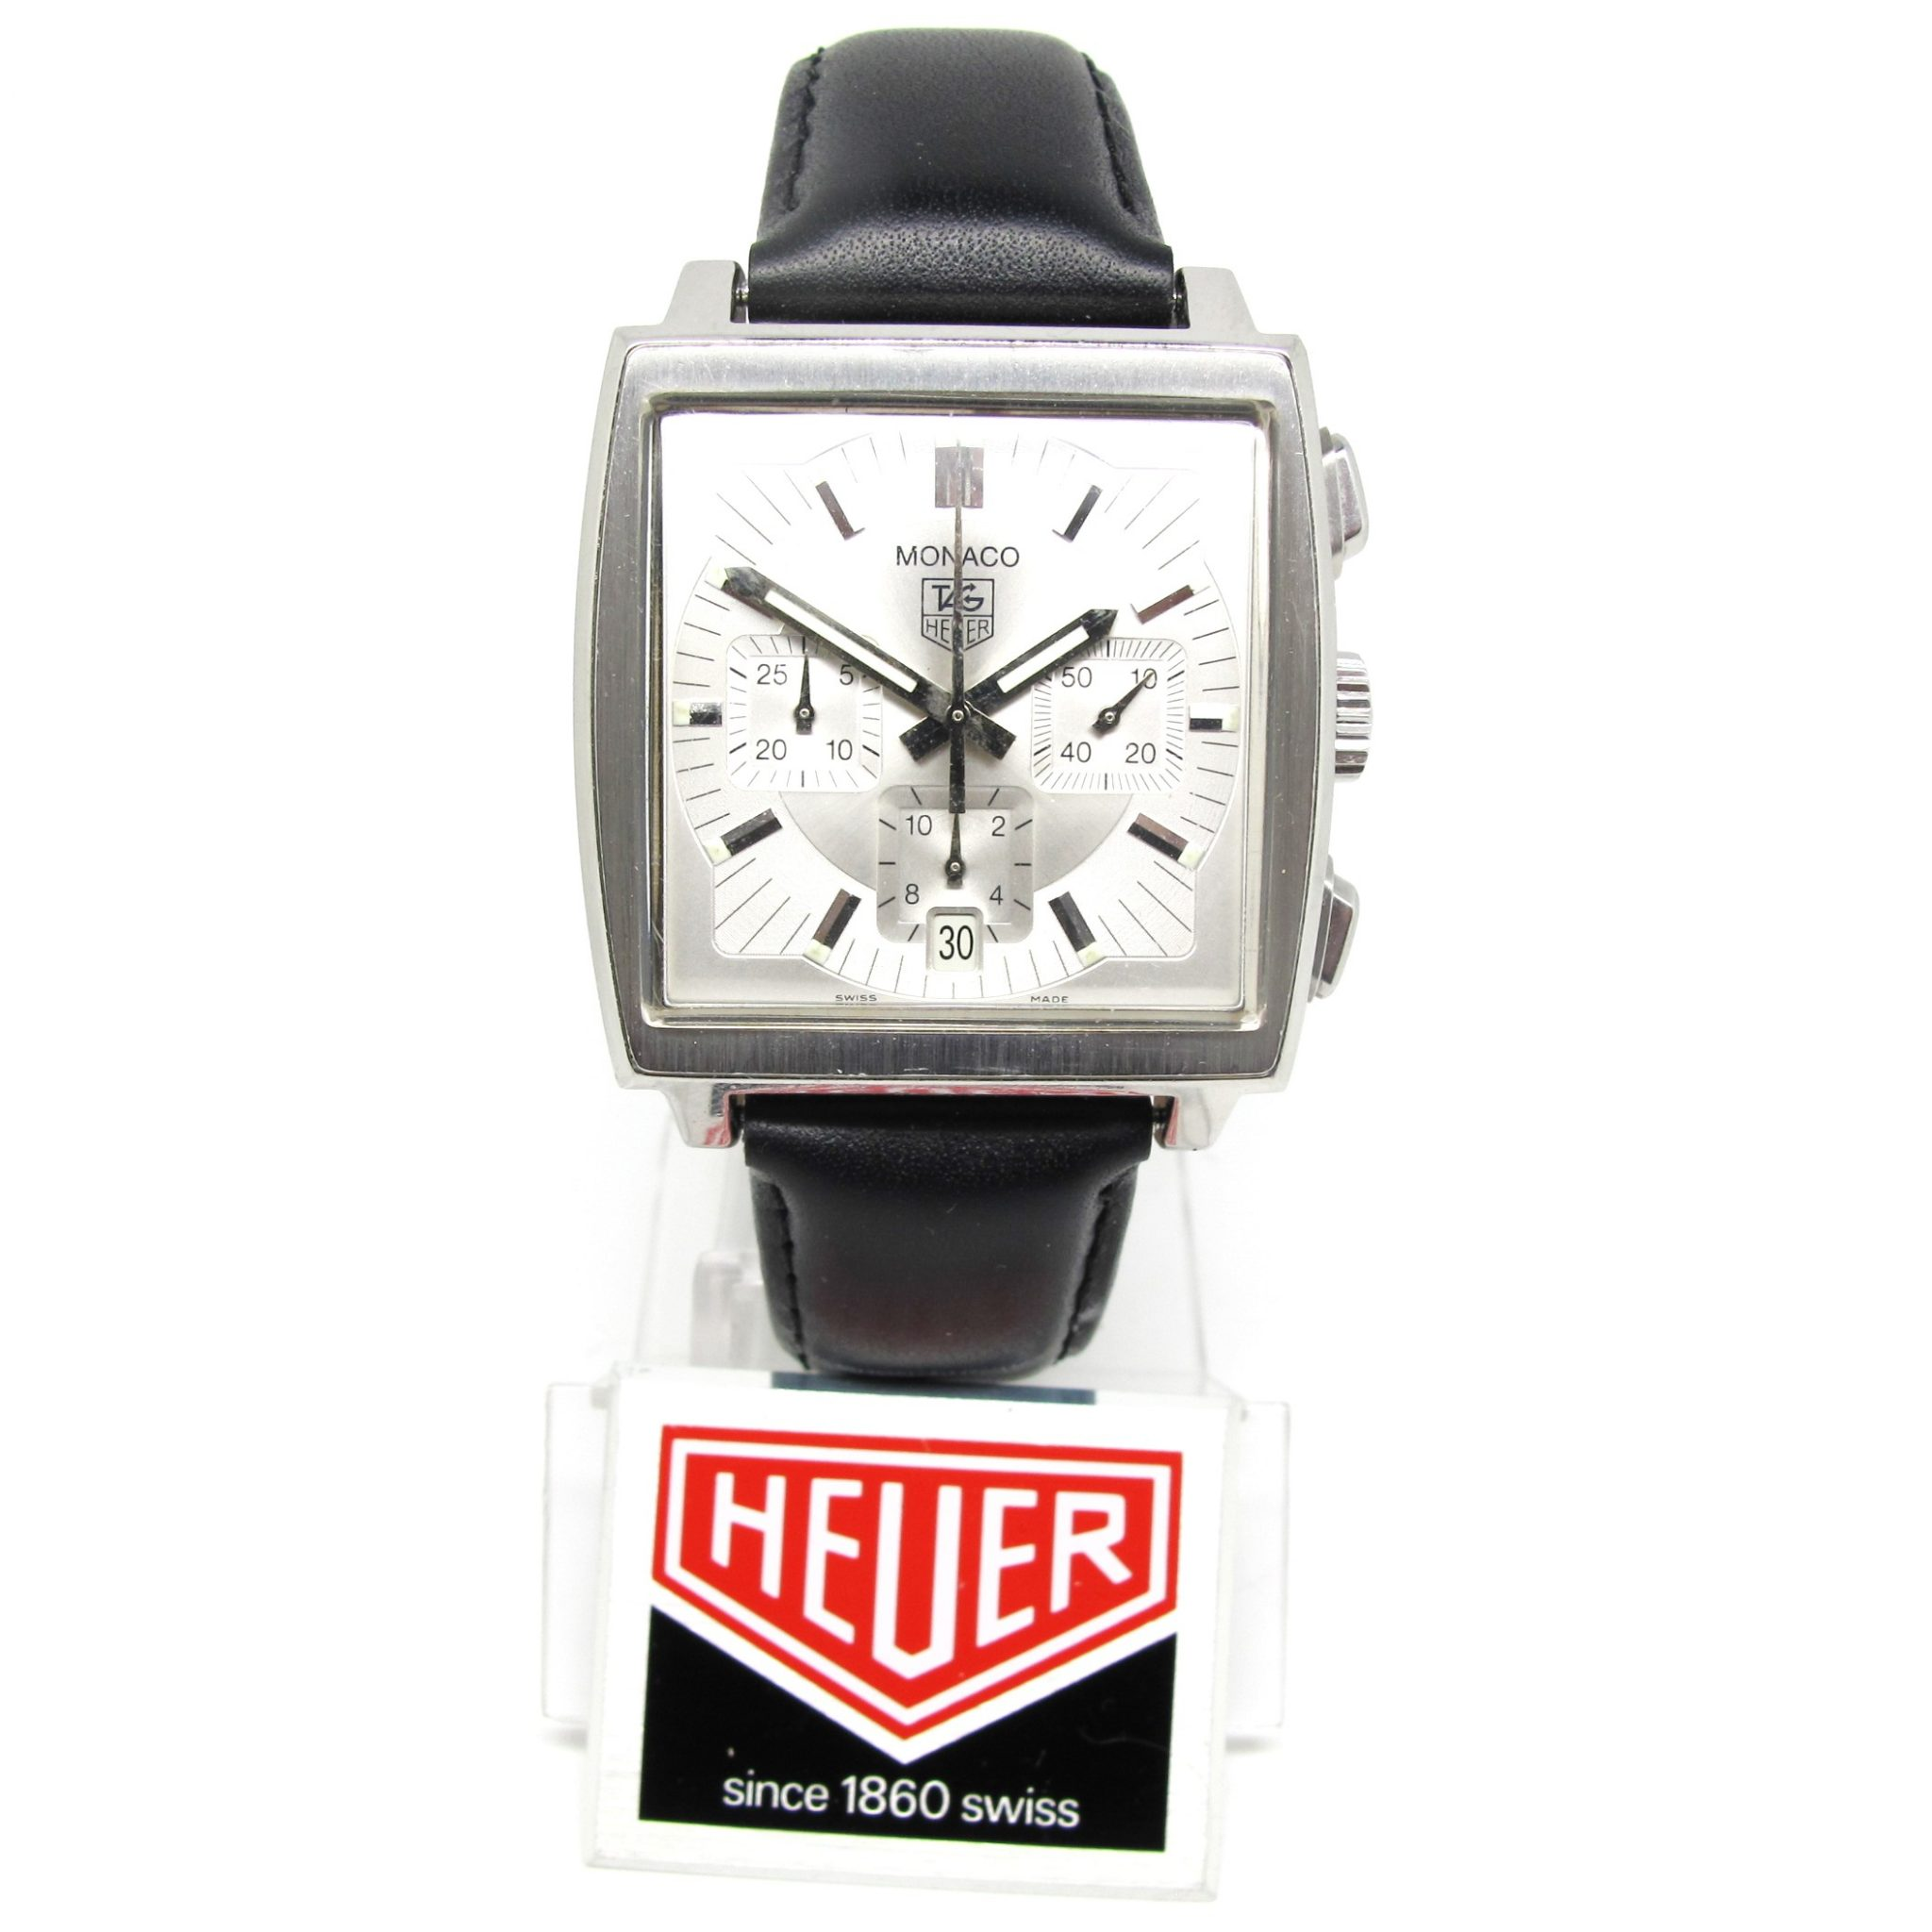 Tag Heuer Monaco re issue